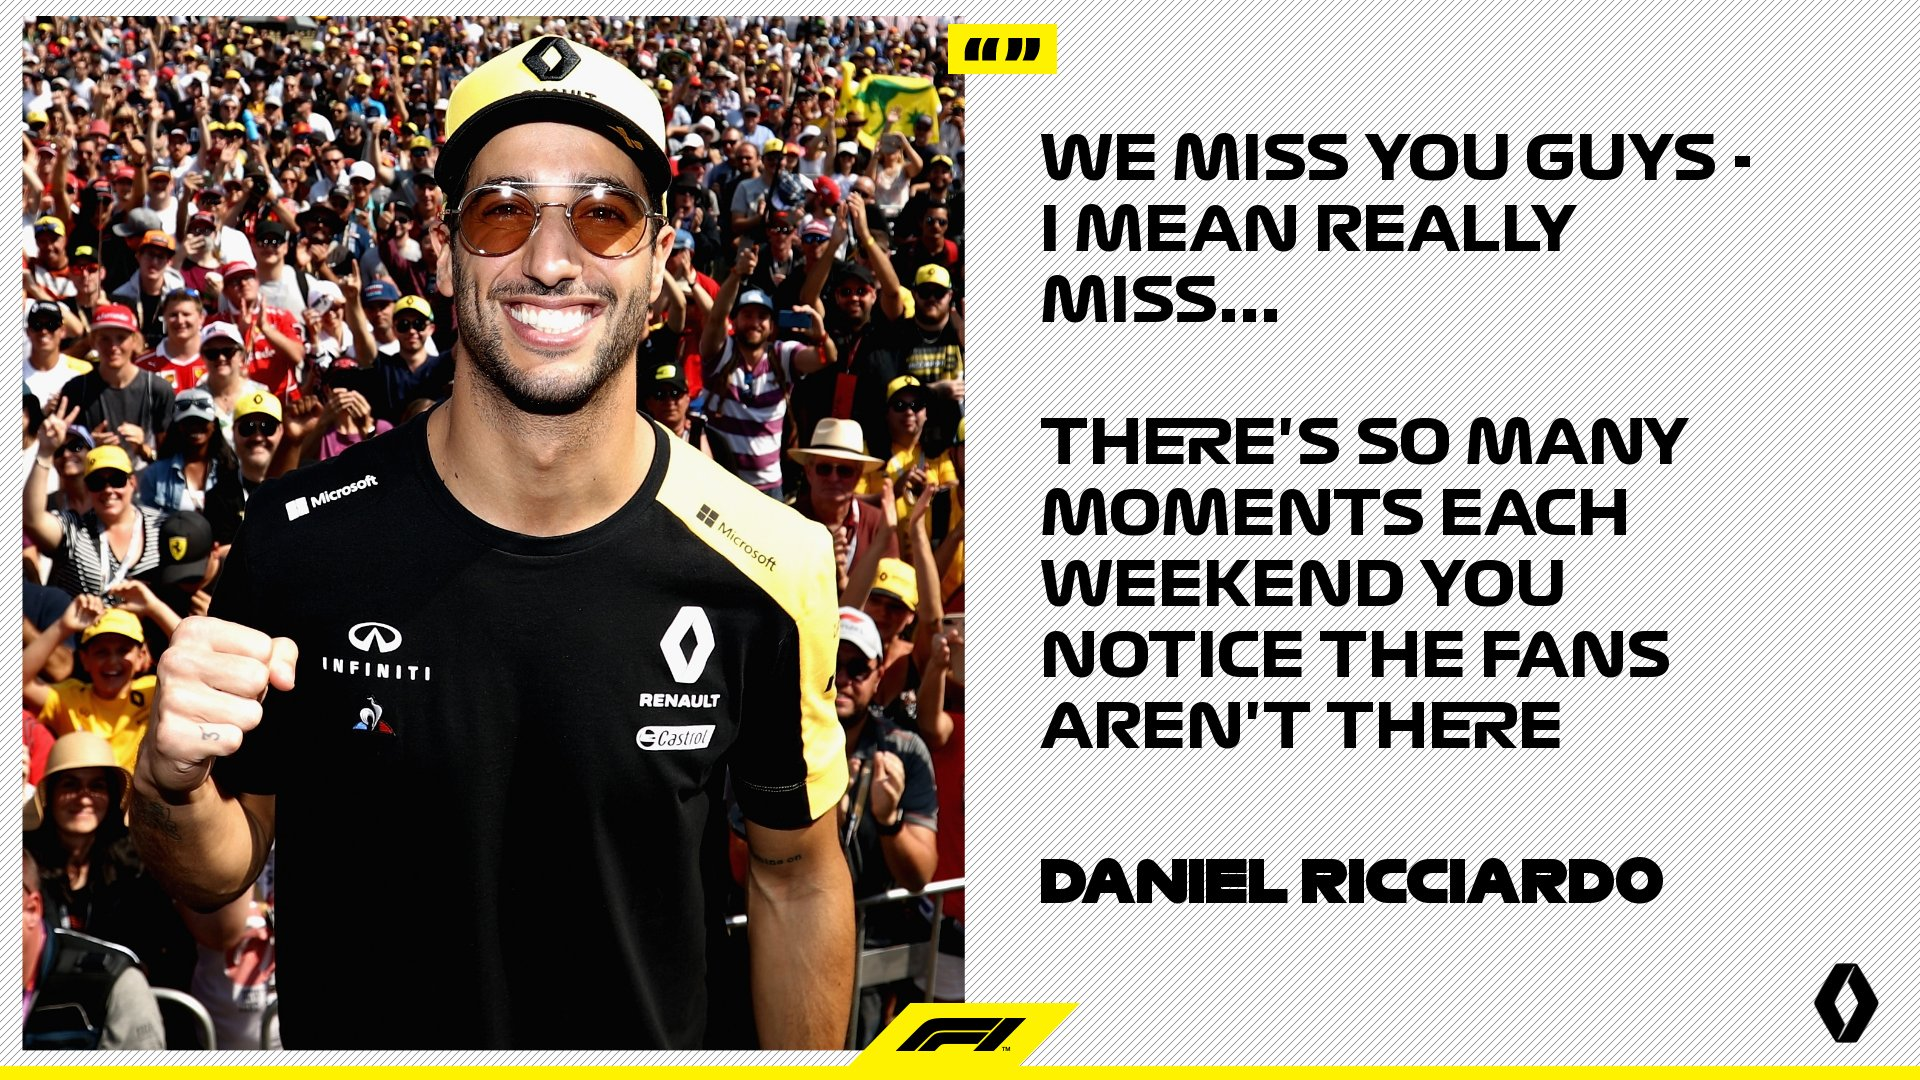 A message for F1 fans from @danielricciardo - and we couldn't agree more 👀 😍  We can't wait to have you back with us... it's just not the same without you 👊  #F1 https://t.co/rHP8VqSwE0